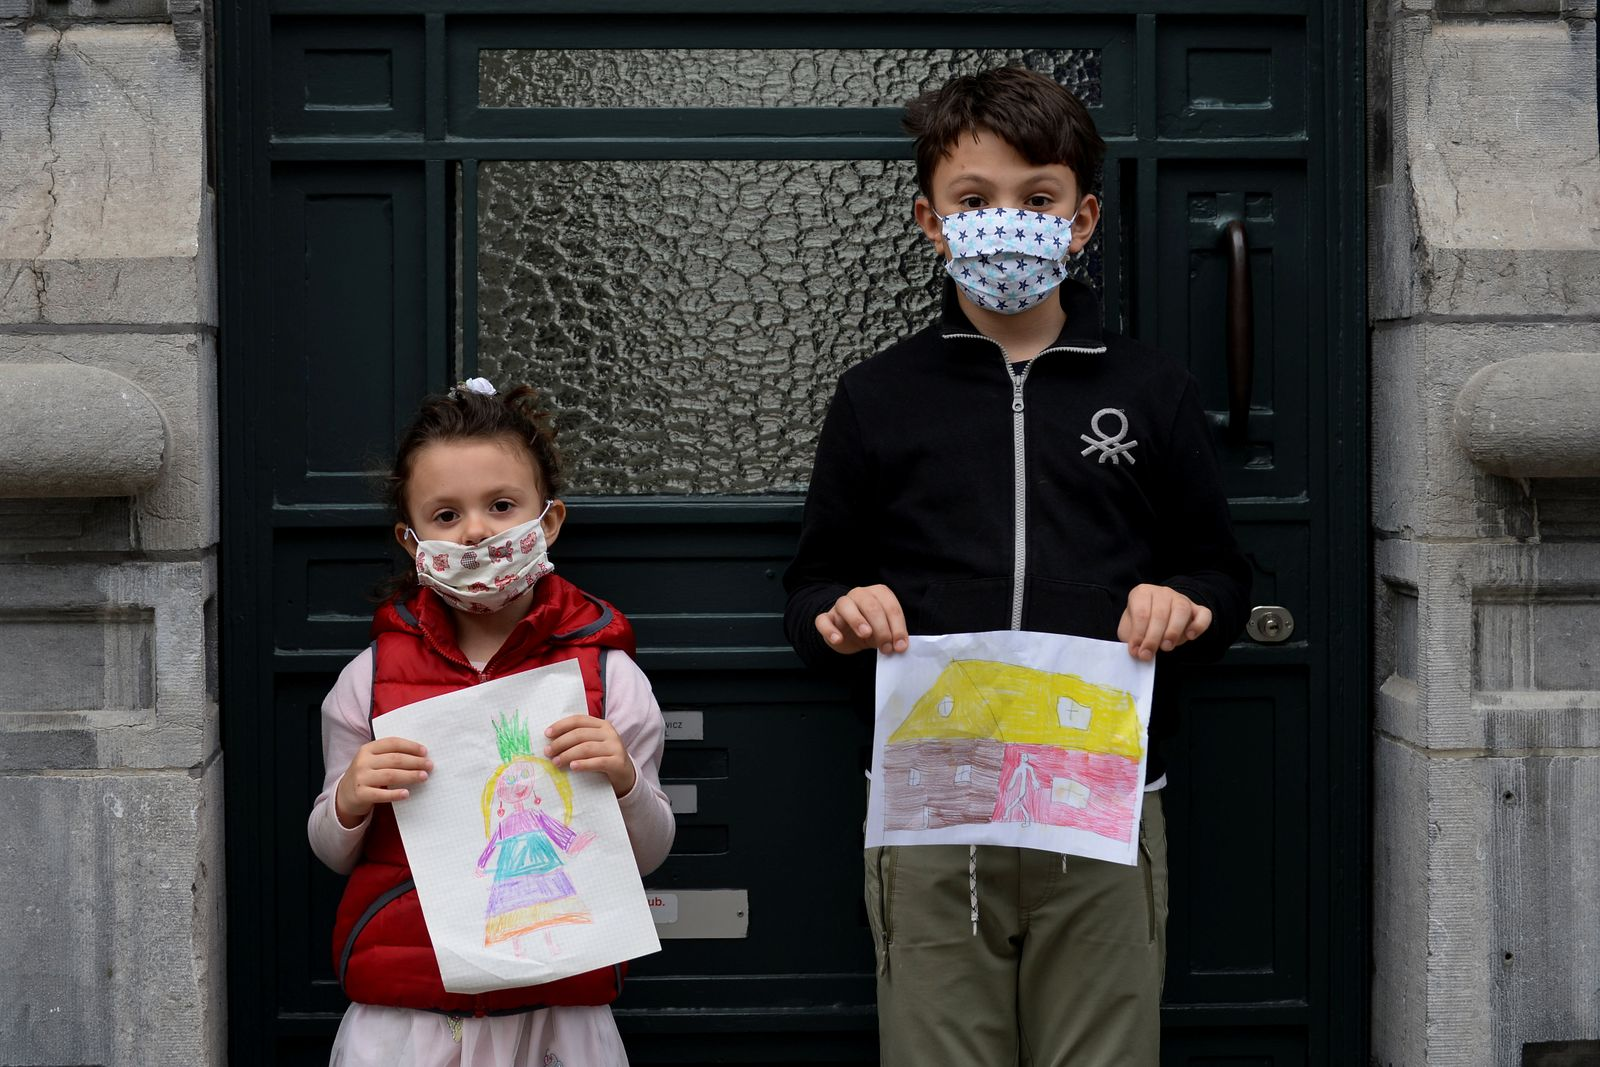 The Wider Image: Children's drawings from lockdown show the world what they miss most